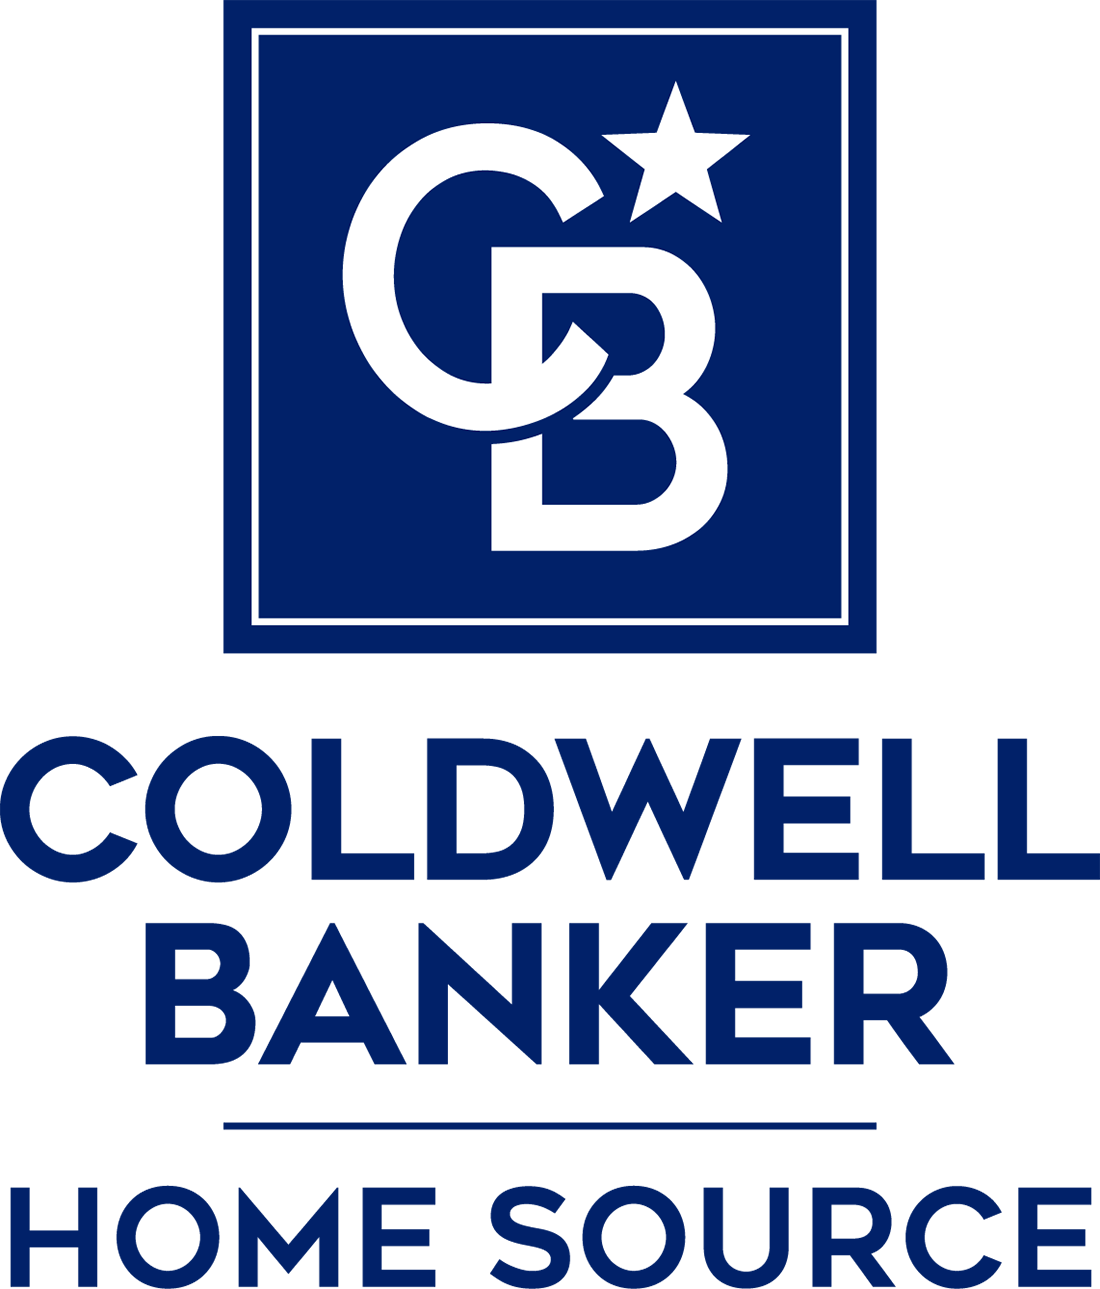 Phyllis Overall - Coldwell Banker Home Source Logo